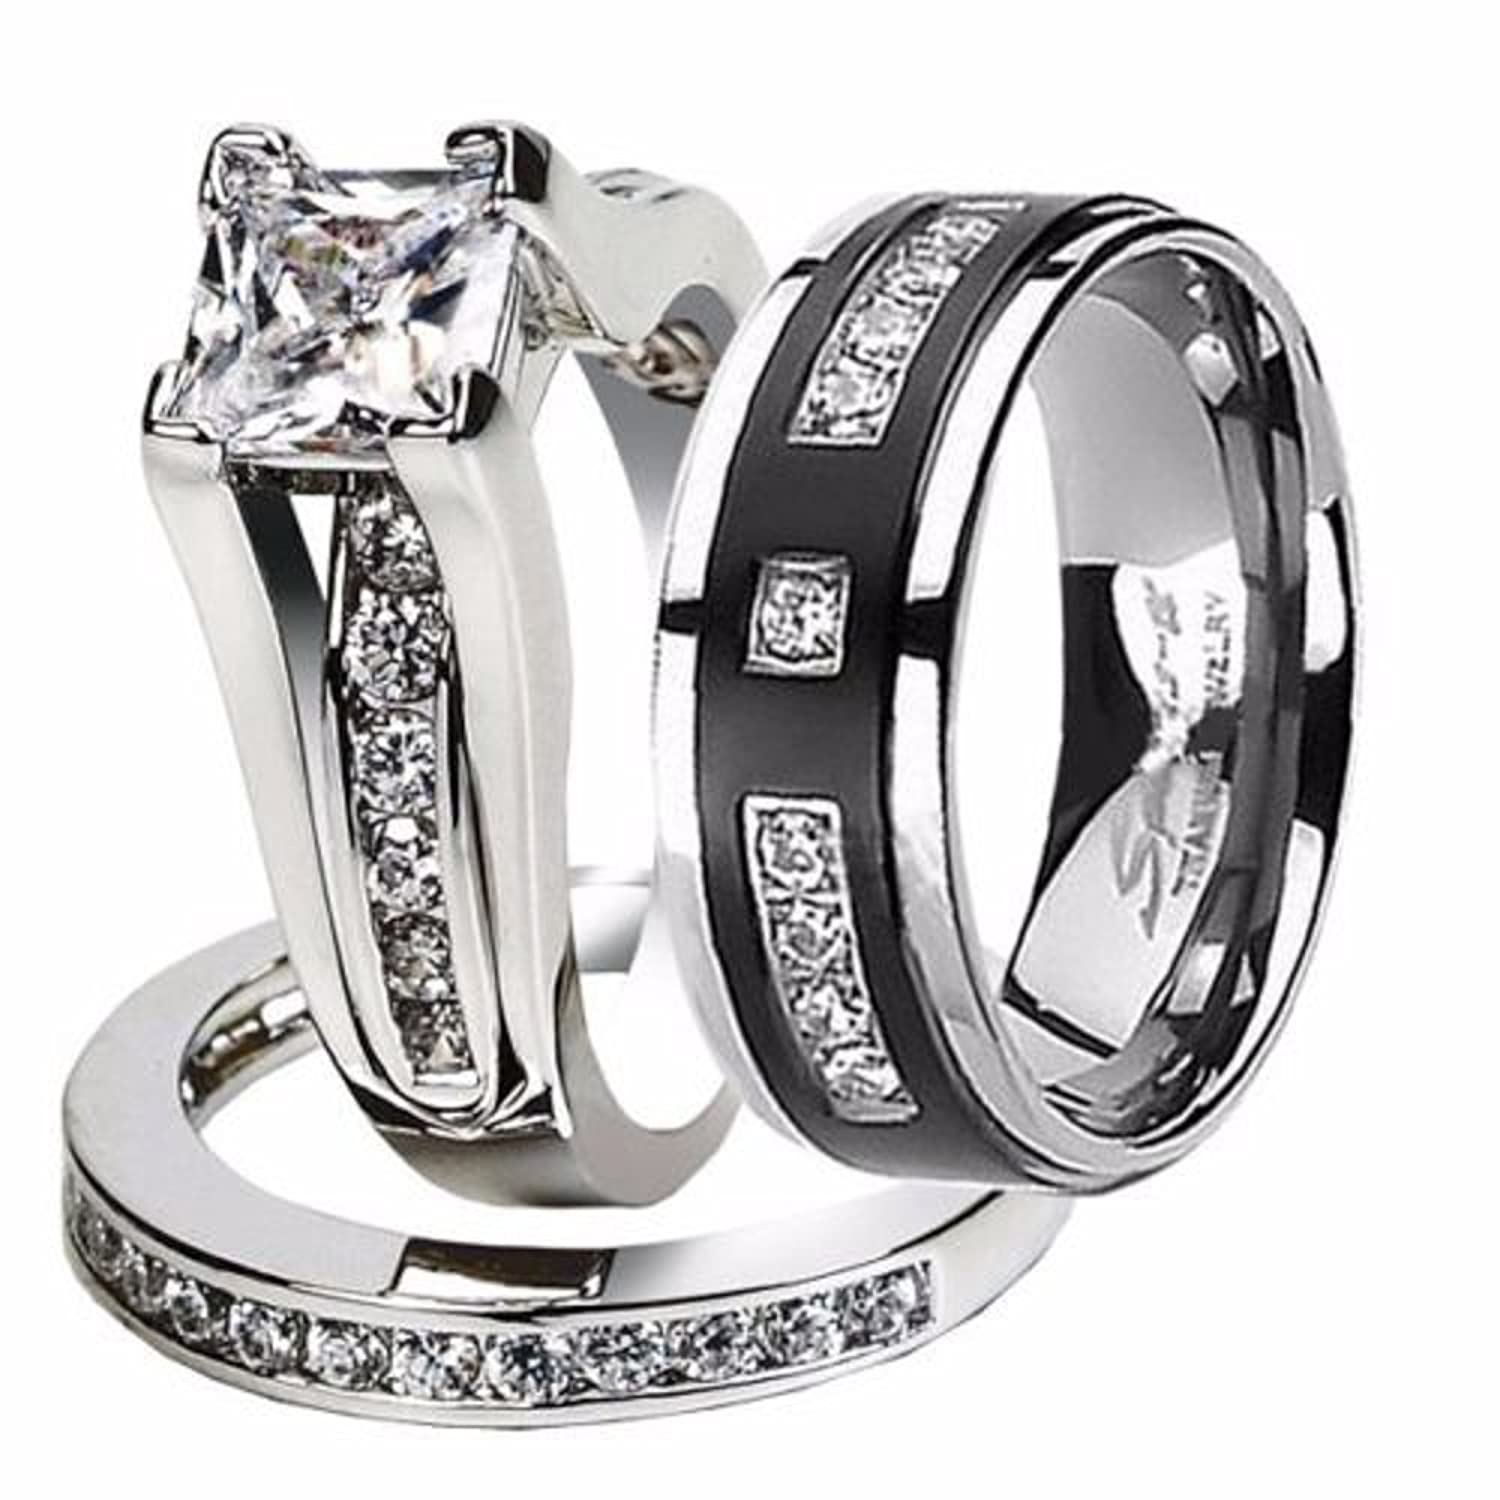 marriage band for walmart elegant luxury wedding rings bands at of her sets platinum